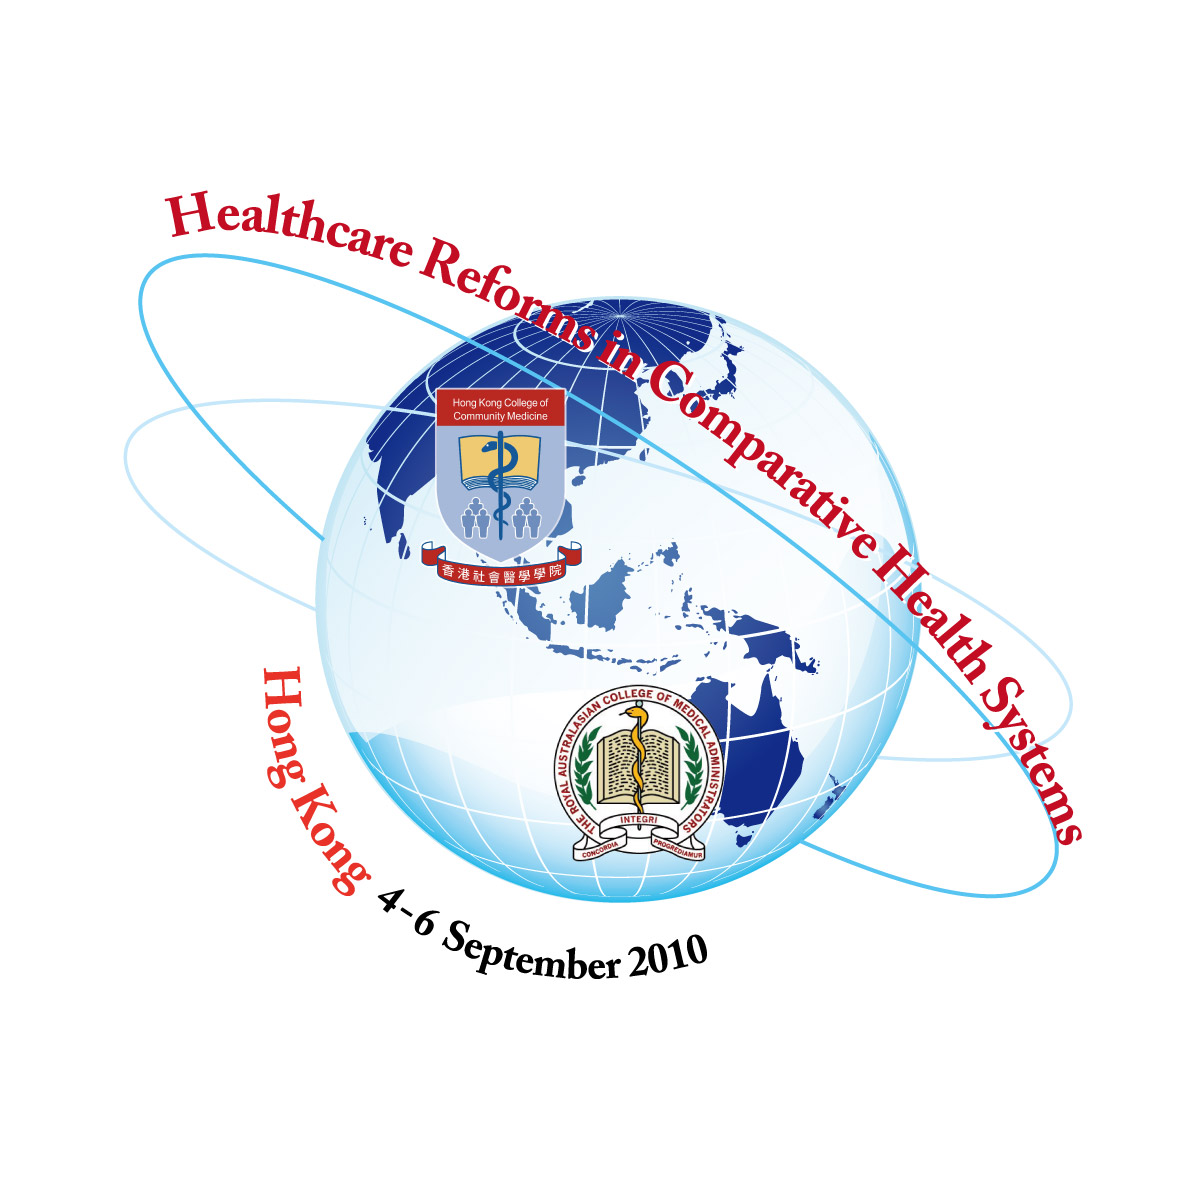 The RACMA-HKCCM International Conference 2010 - Healthcare Reforms in Comparative Health Systems